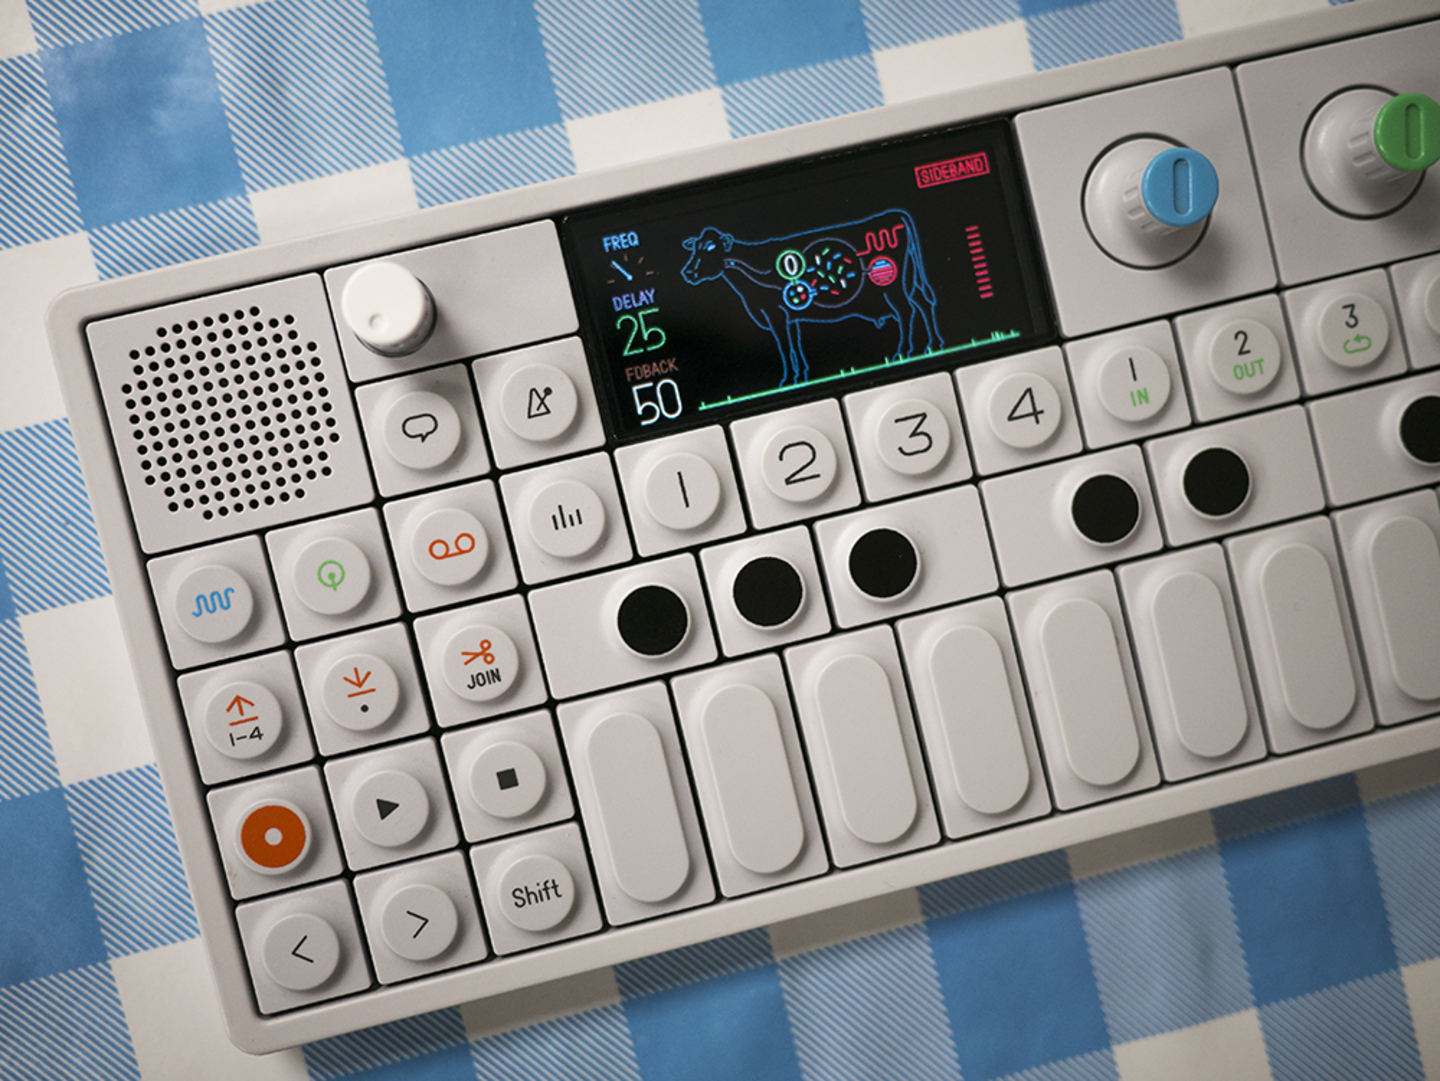 Our Guide to the Teenage Engineering OP-1